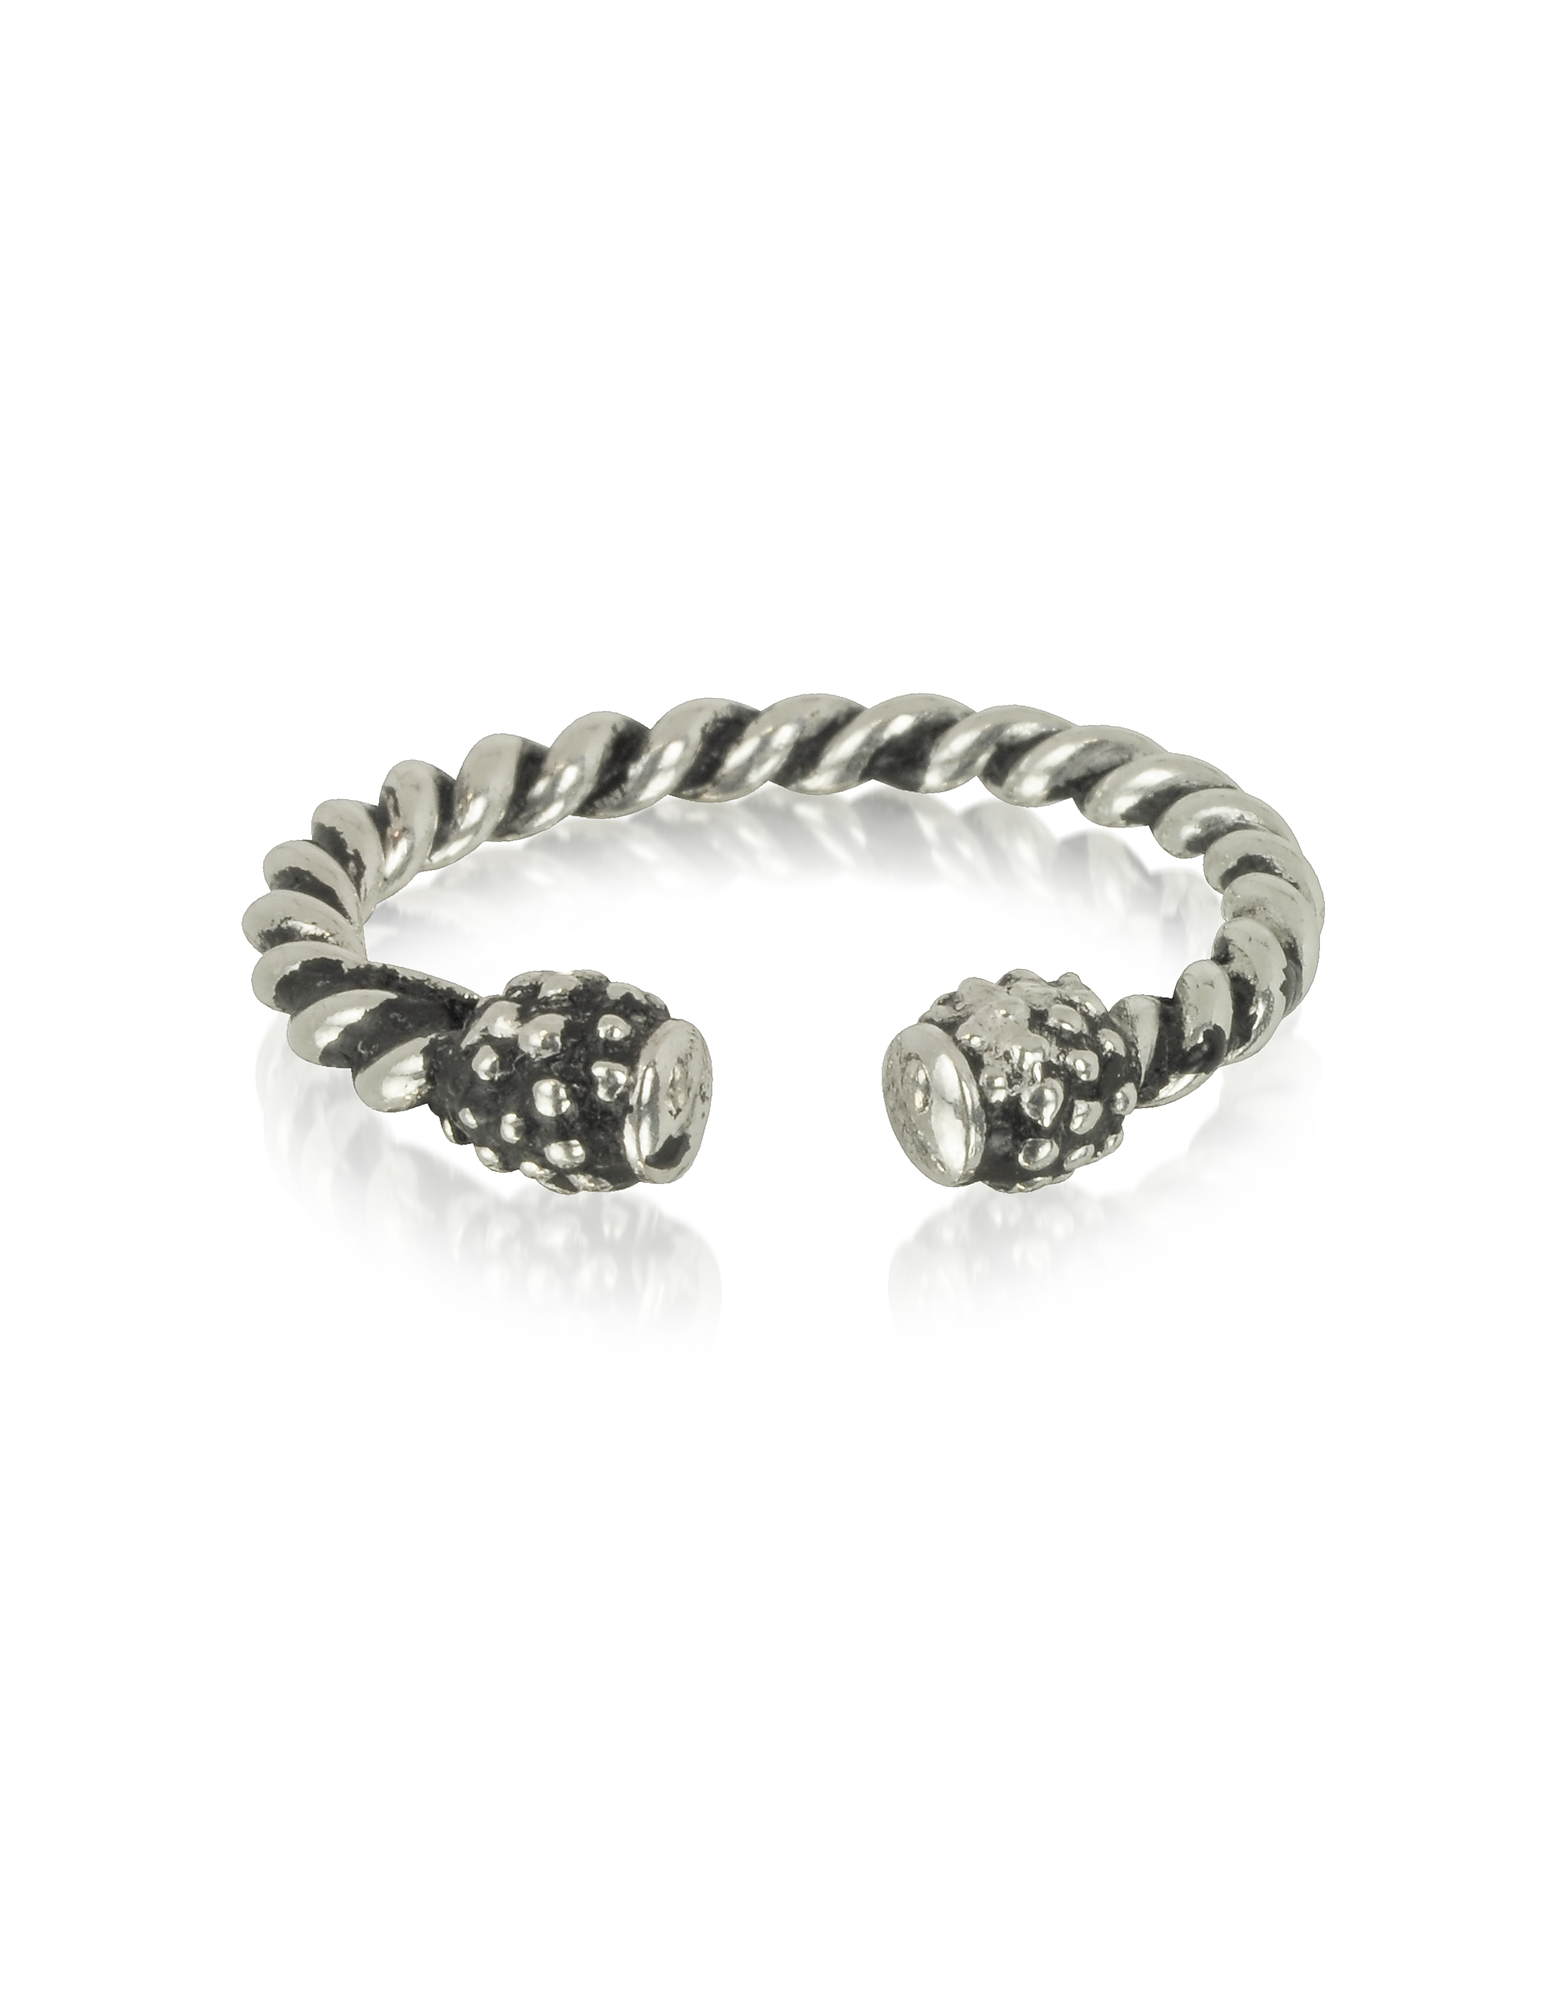 Giacomo Burroni Designer Men's Rings, Twisted Silver Ring